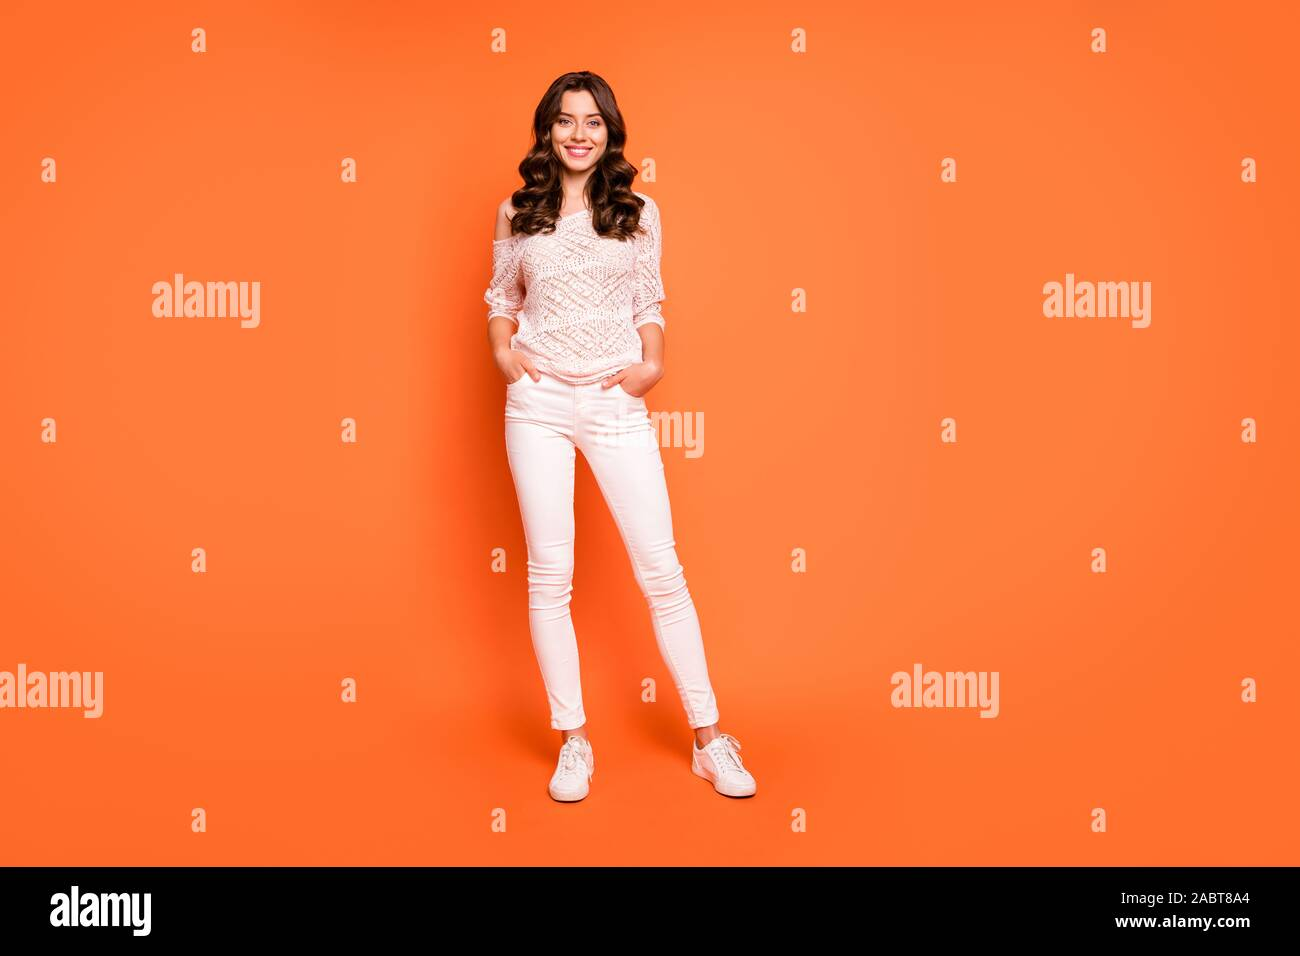 Lace Pants High Resolution Stock Photography And Images Alamy